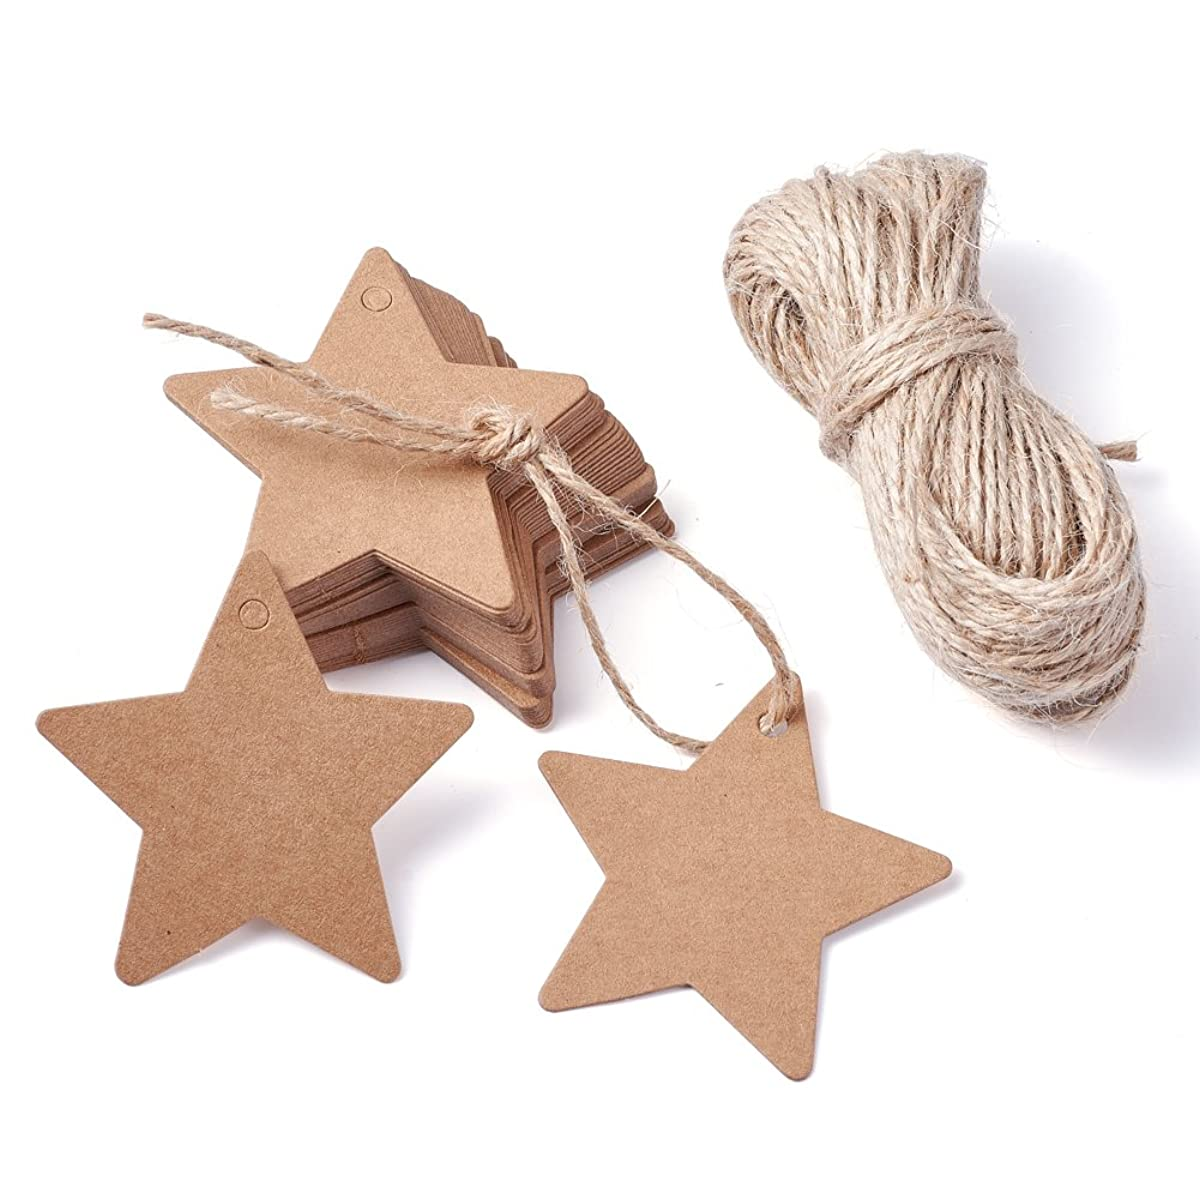 Kissitty 100pcs Brown Paper Gift Tags Bonbonniere Favor Thank You Gift Tags 2.3